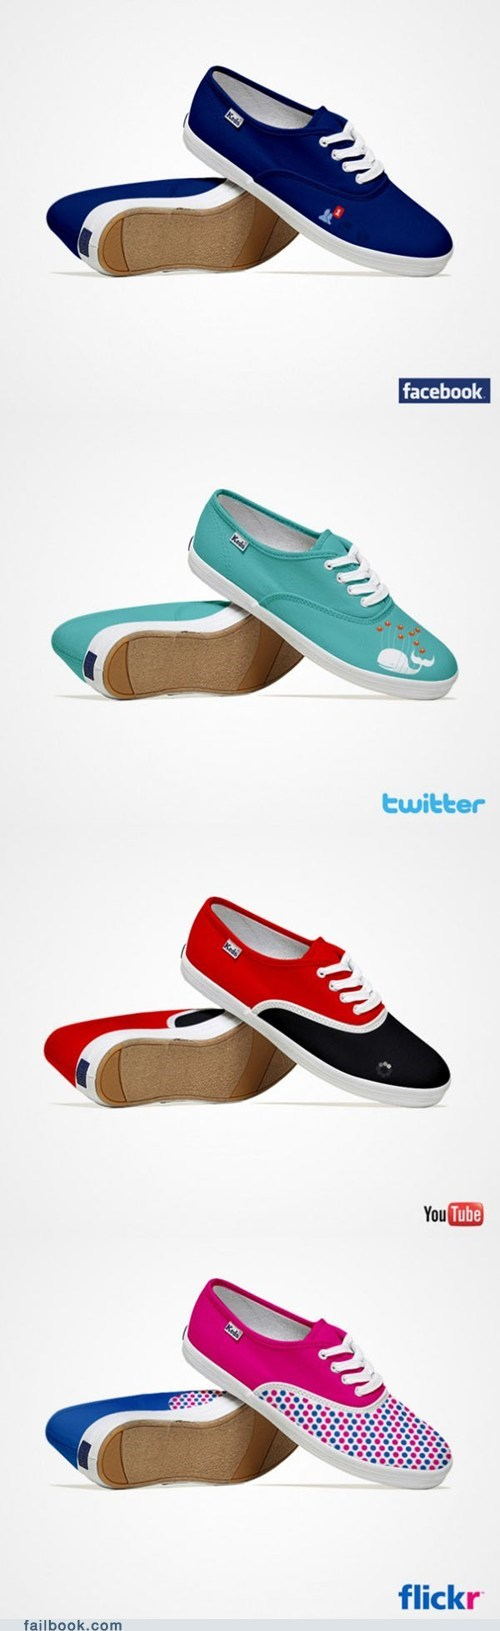 concept,facebook,fashion,flickr,shoes,social media,twitter,youtube